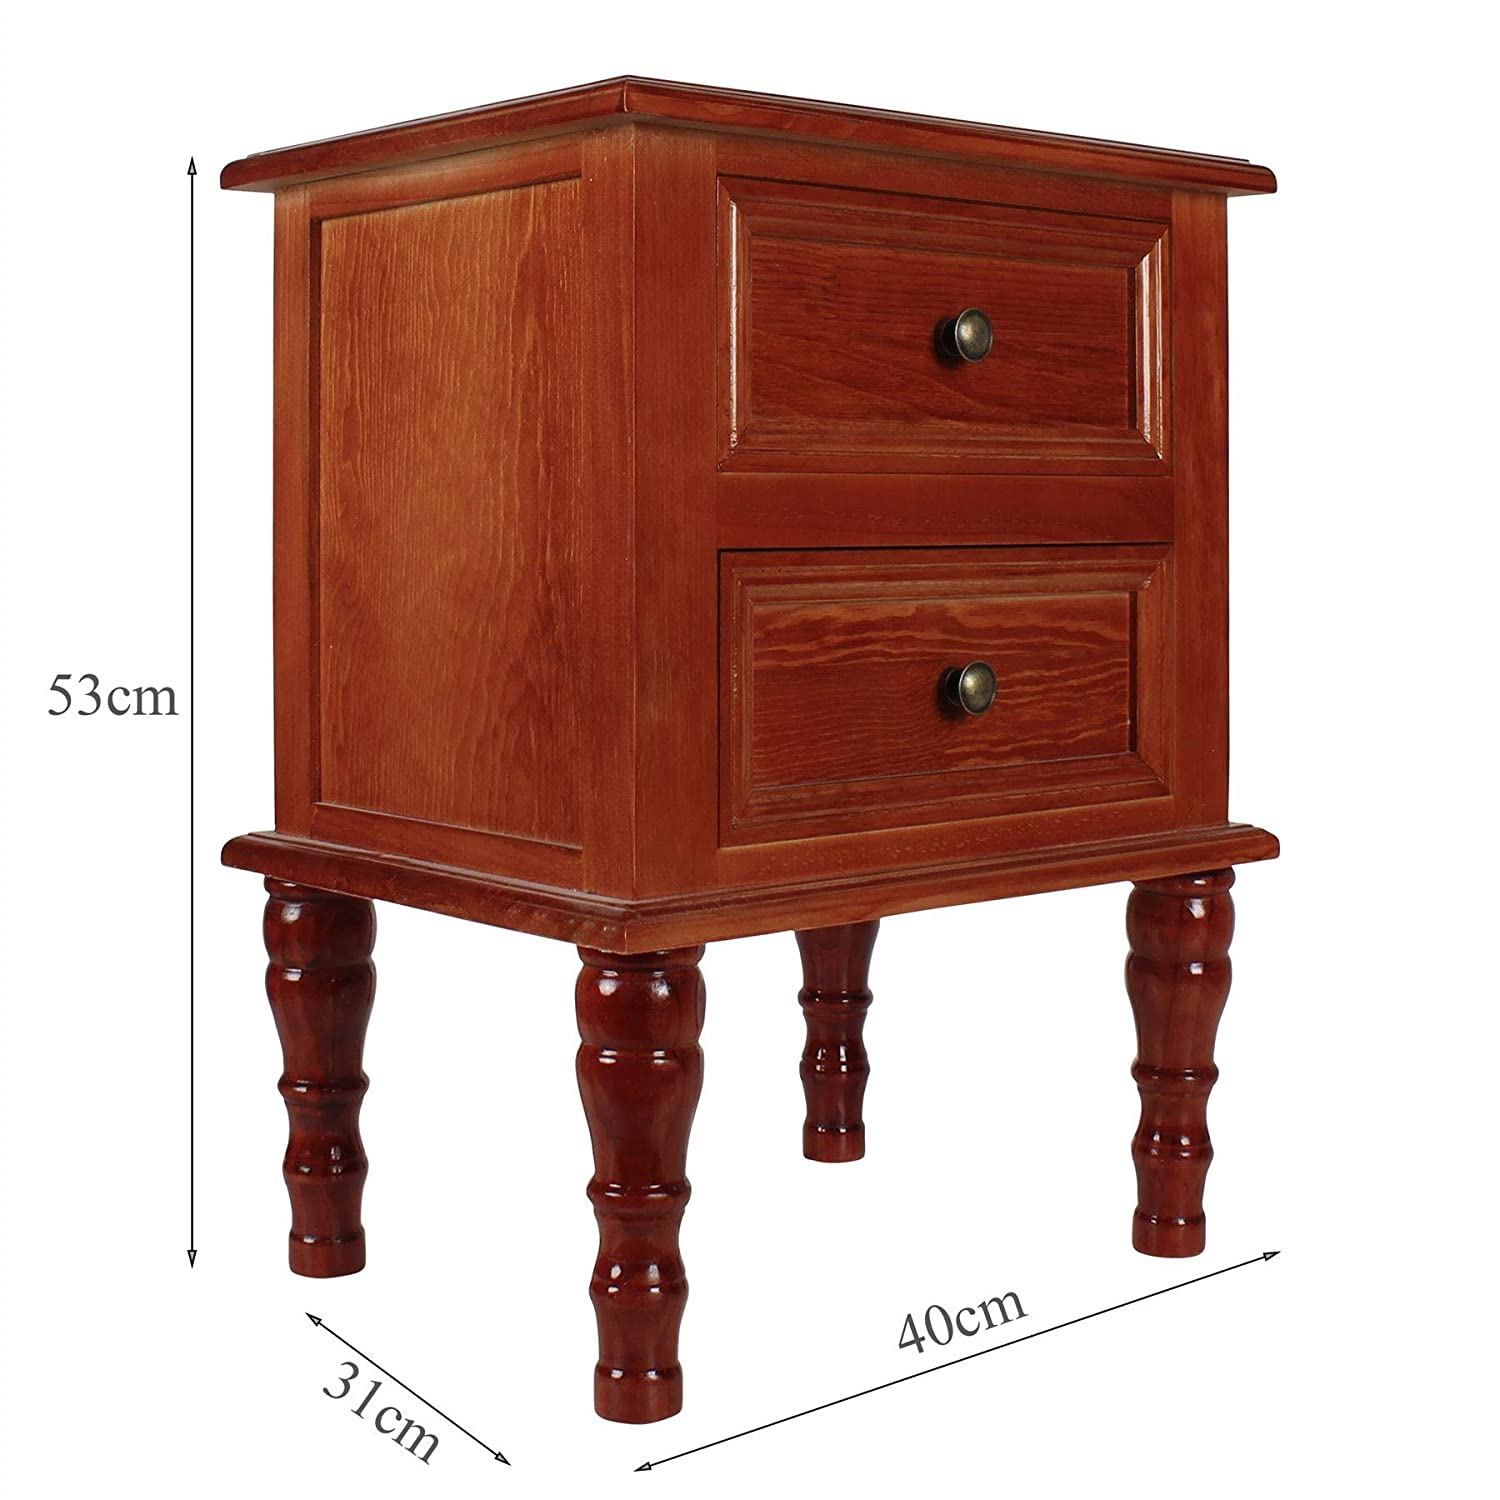 Cosy7 Oxford Collection Assembled Solid Wood 2 Drawers Pine Bedside Table Red Vantage Mid Century 60s Bedroom Cabinet Shabby Chic Retro Nightstand